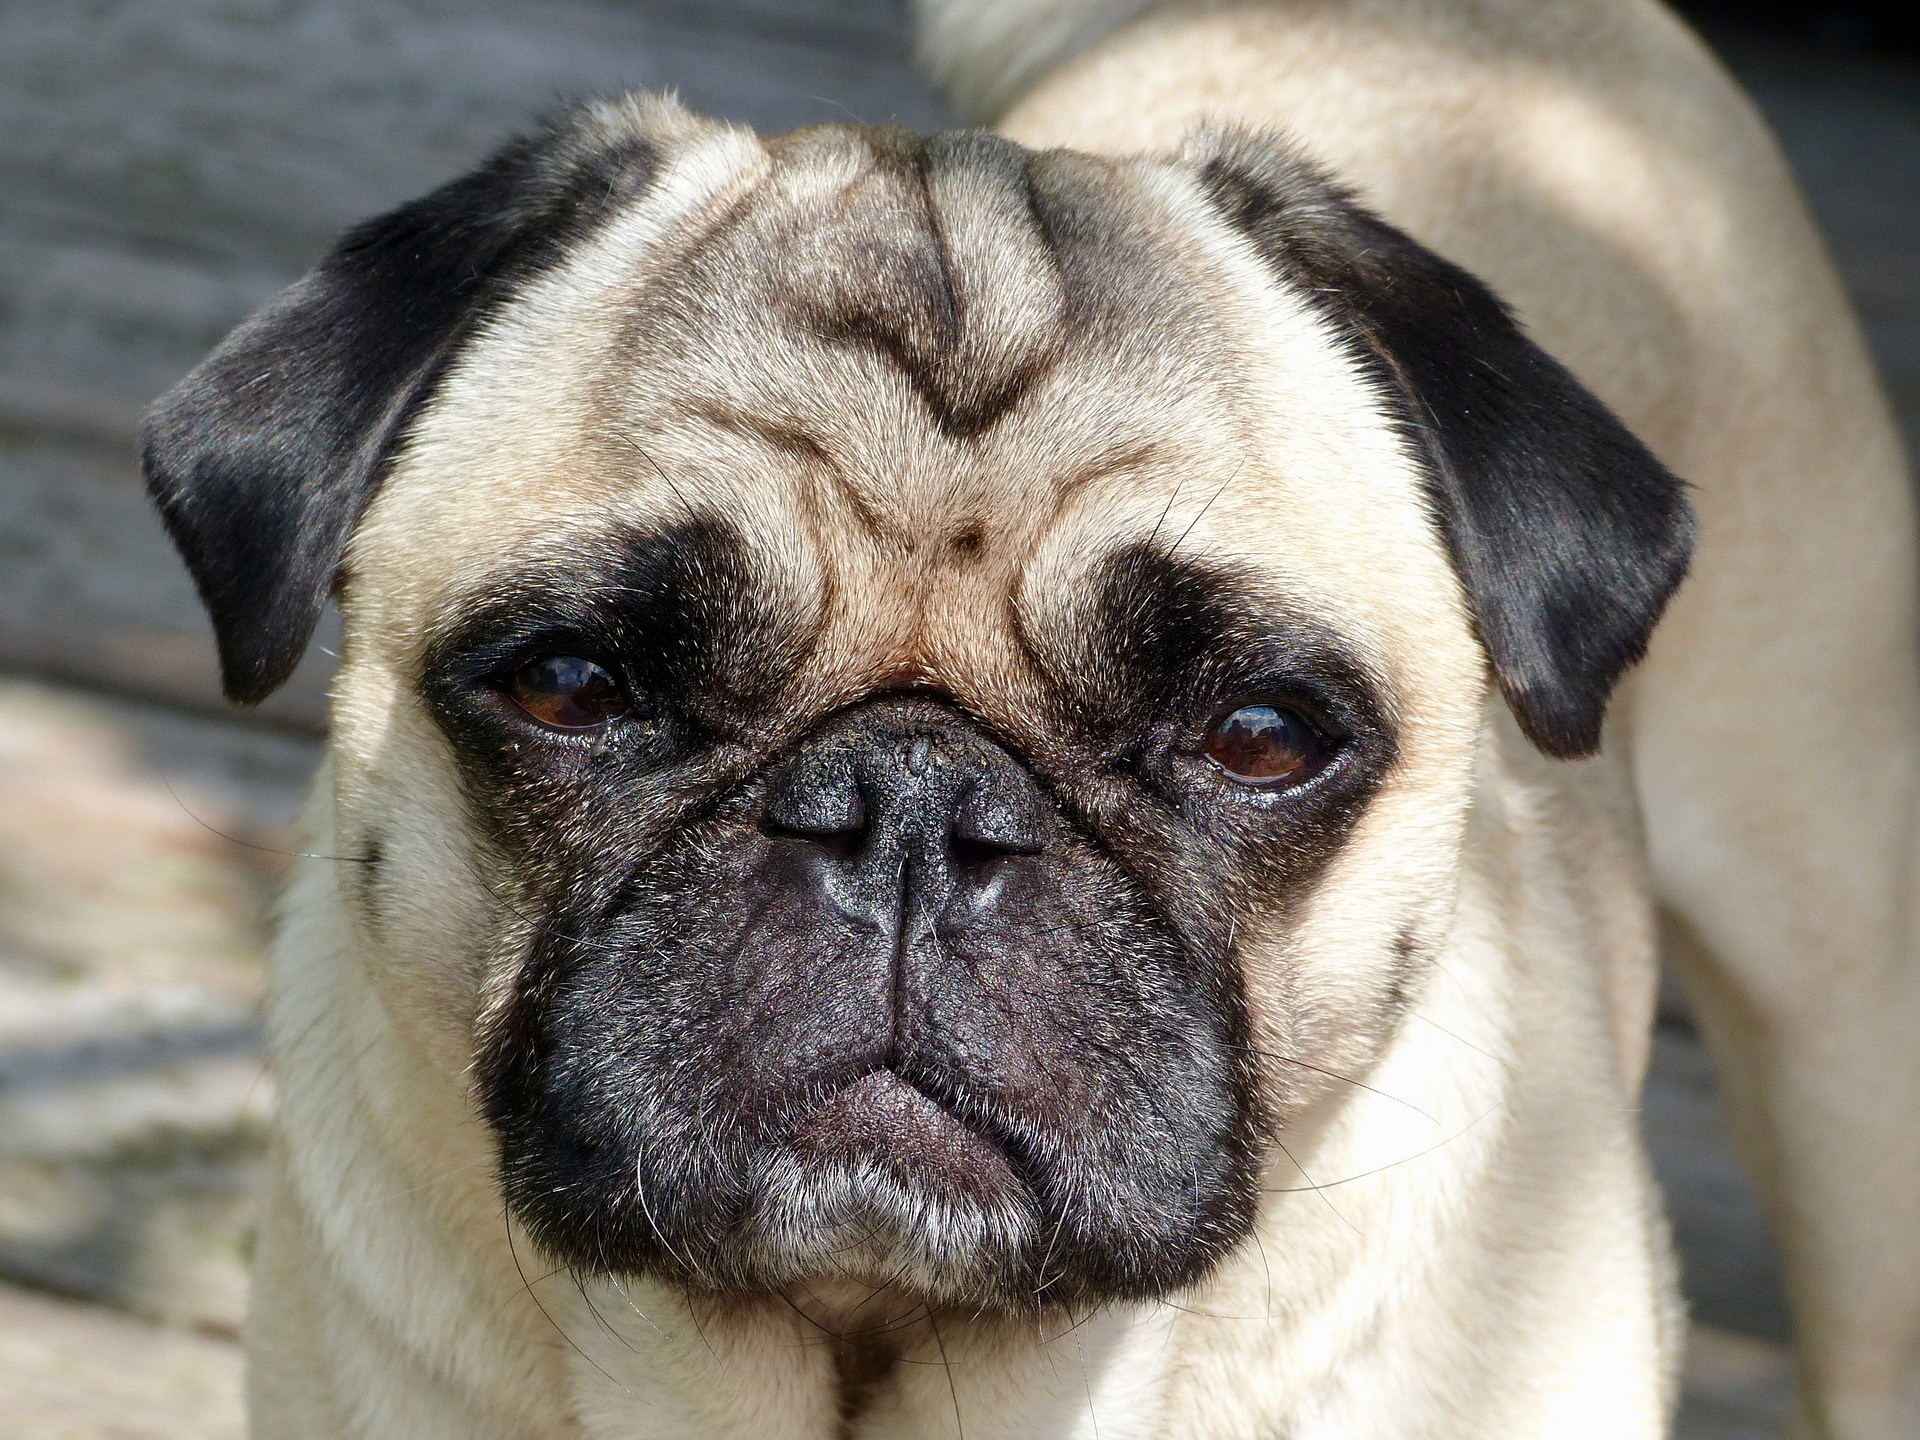 About Pug Cute Pugs Funny Pugs Pug Stories All Pugs